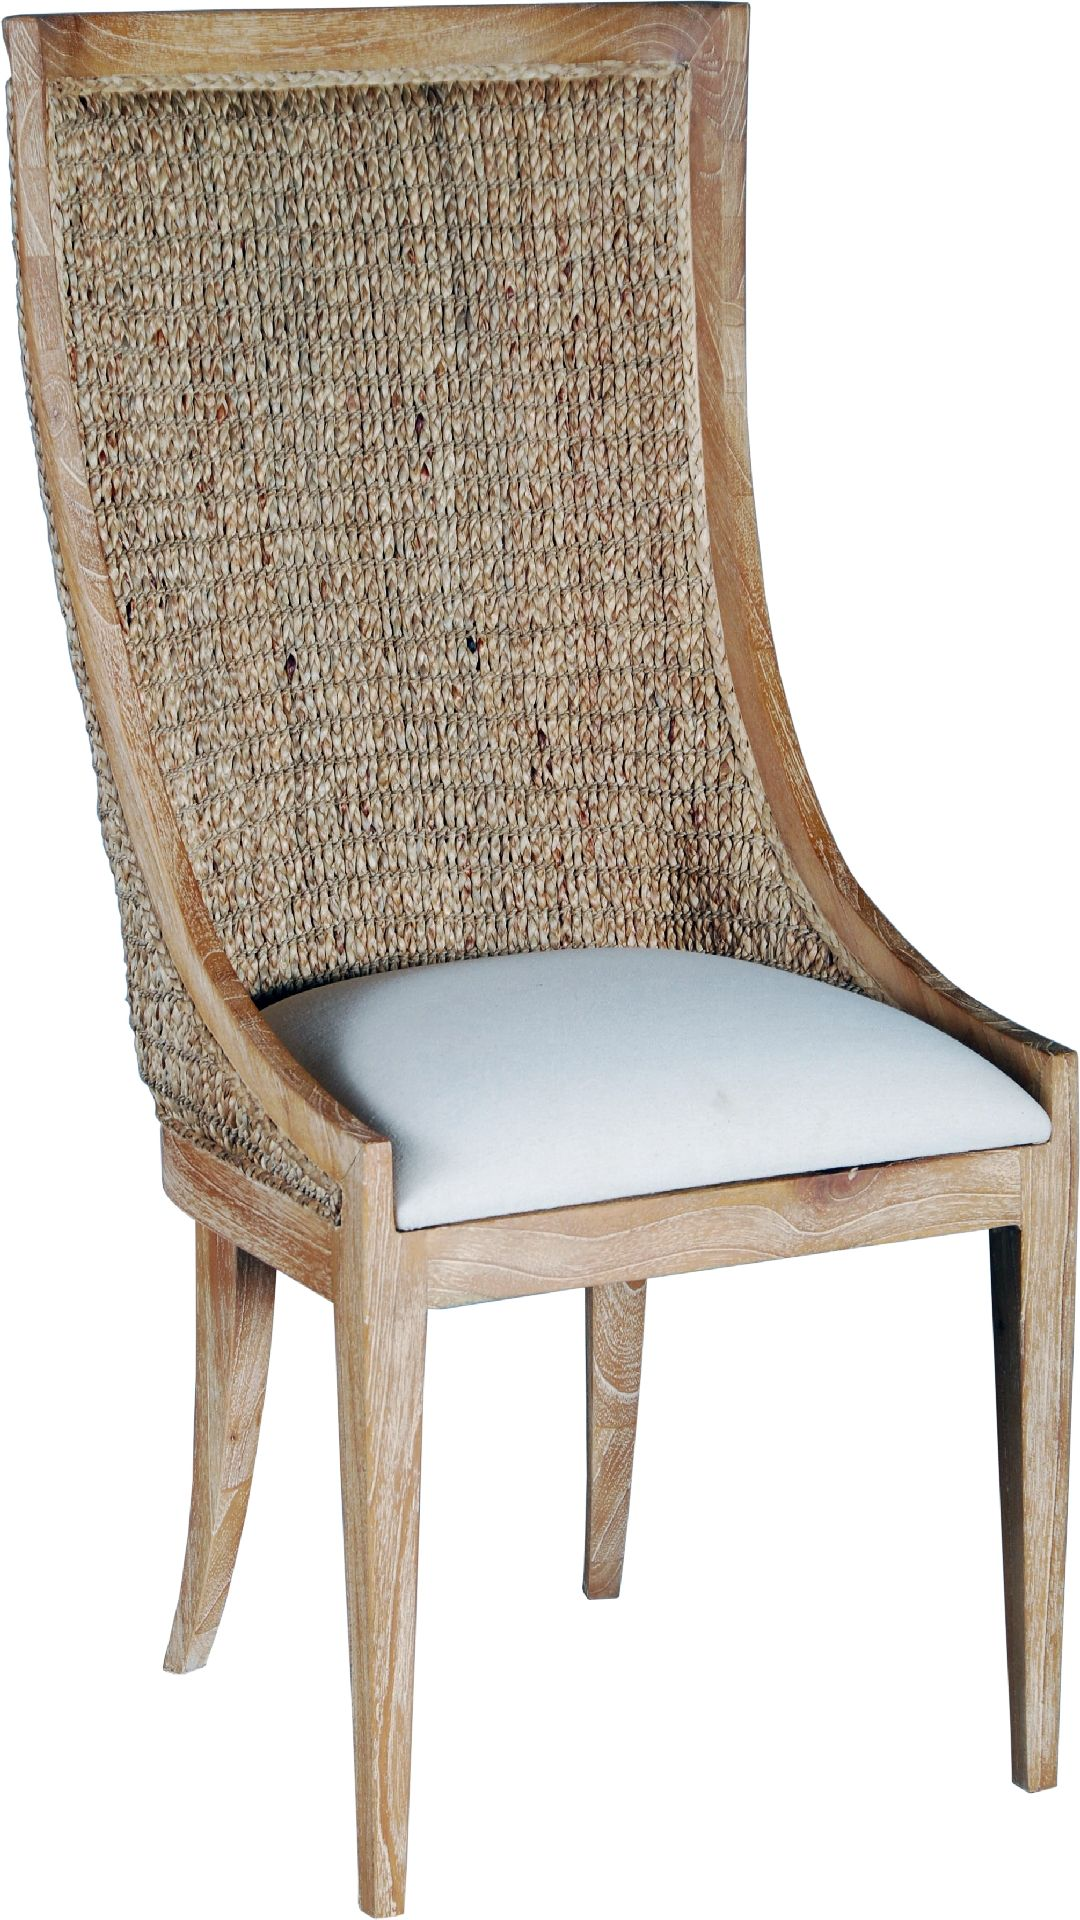 Woven dining chair stühle pinterest dining chairs